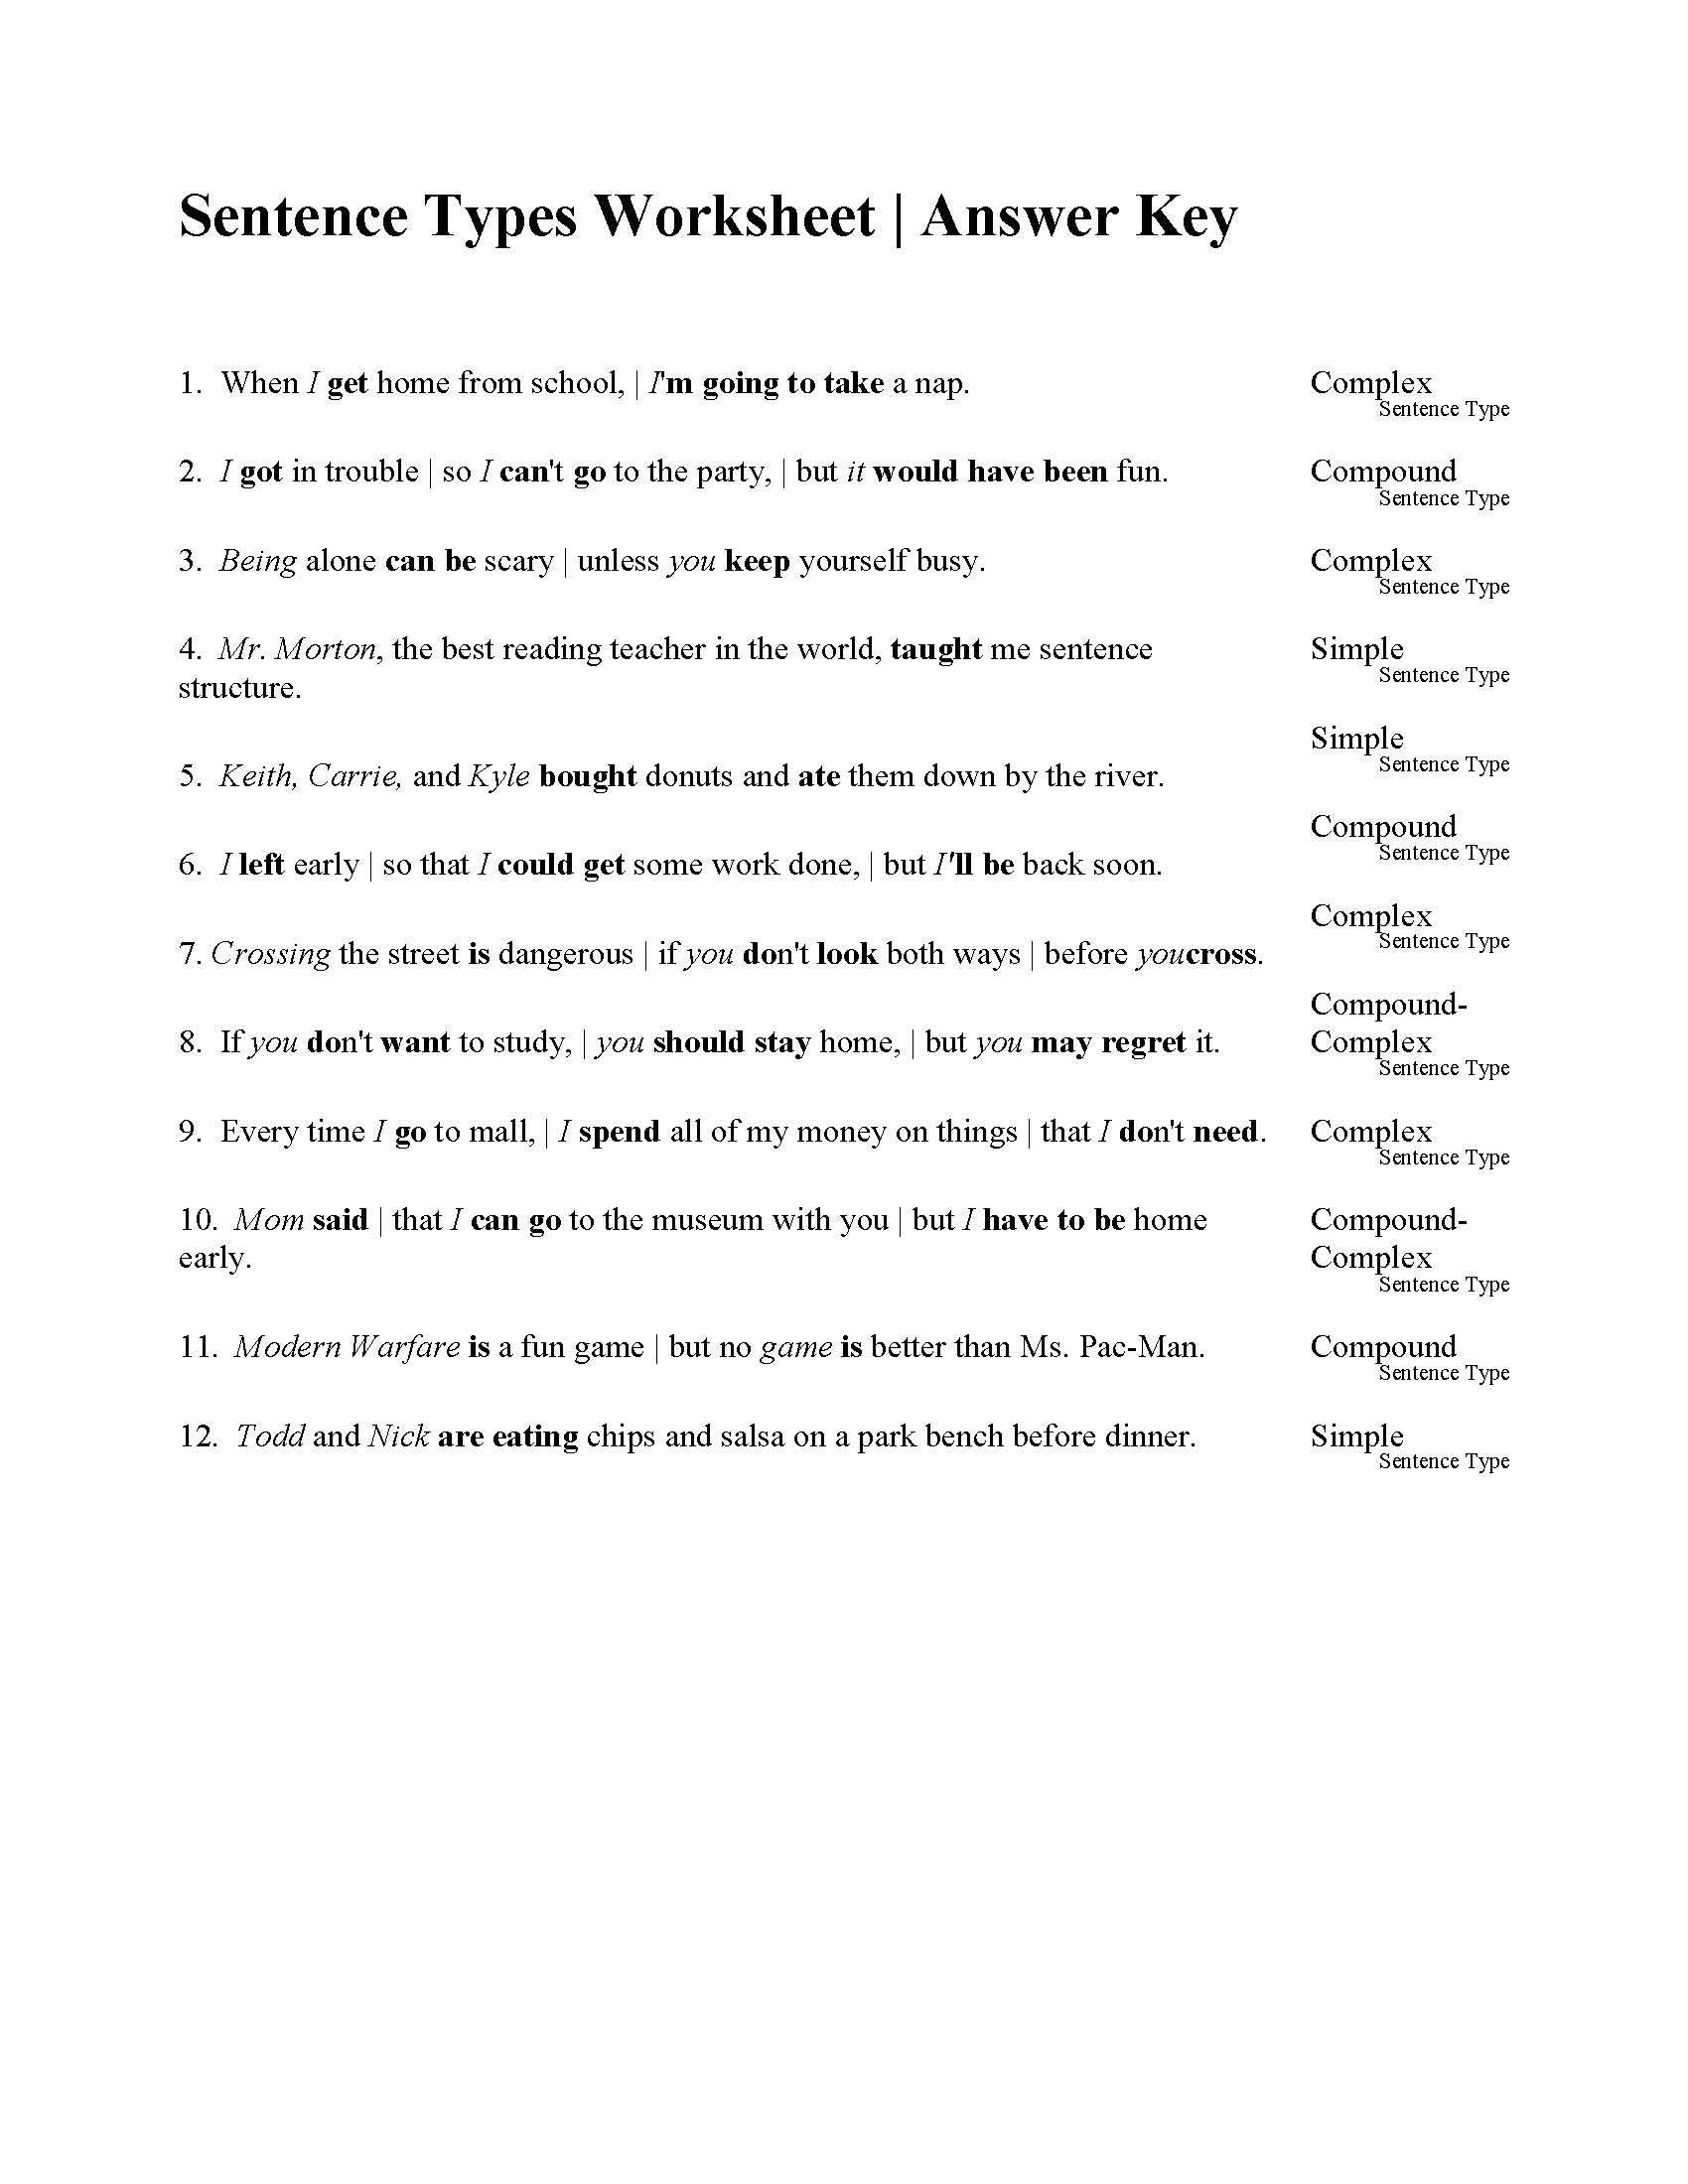 Complex Sentence Worksheets 3rd Grade Sentences Types Worksheet Answers Sentence Exercises